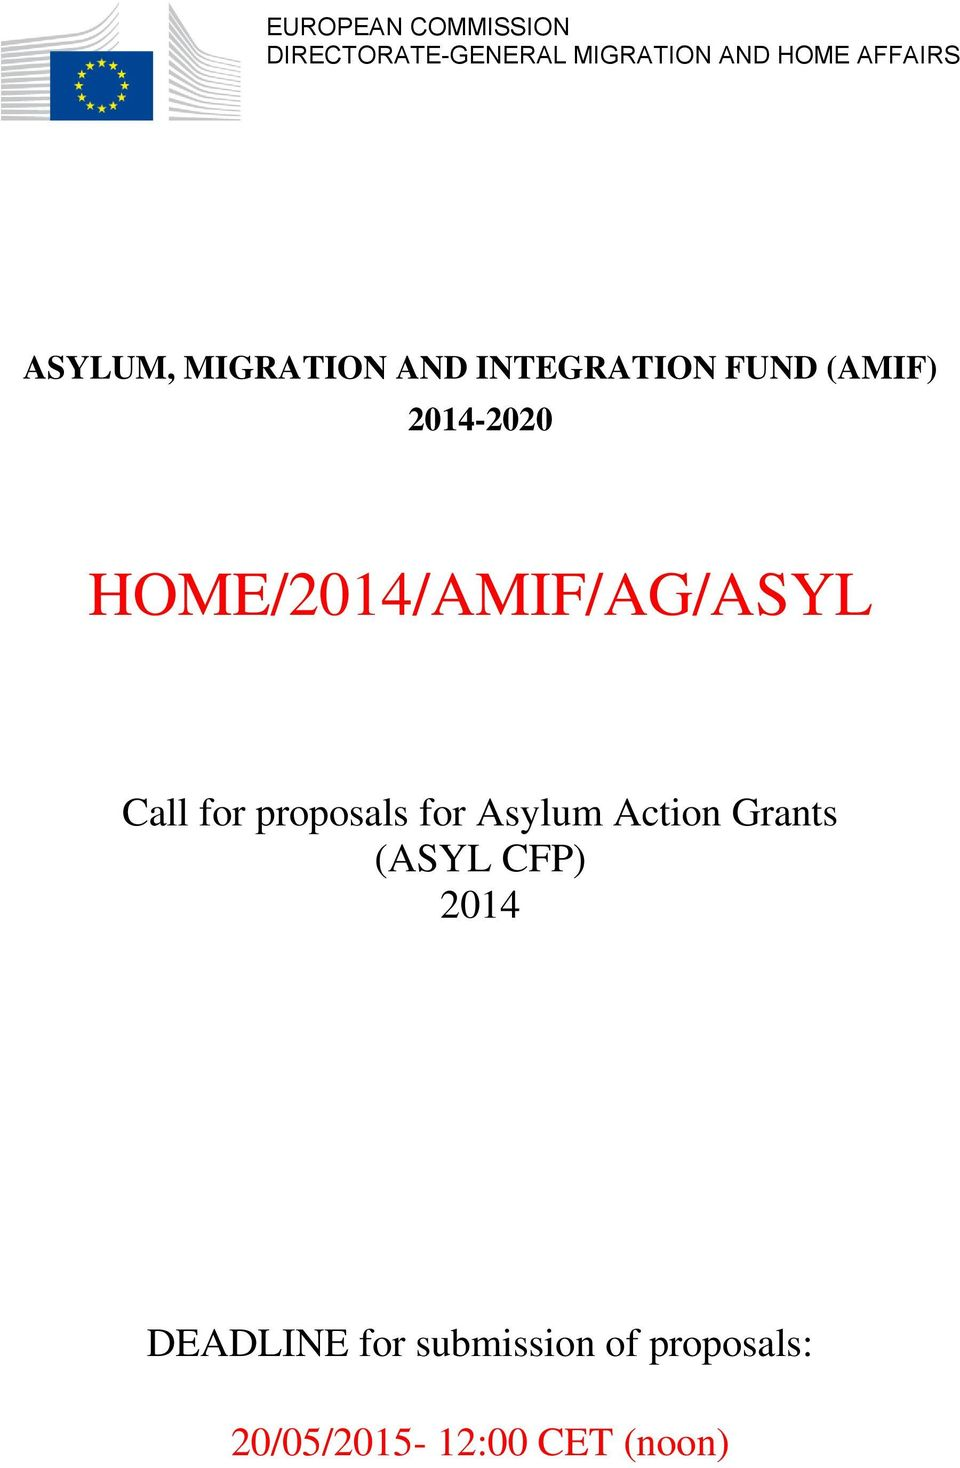 HOME/2014/AMIF/AG/ASYL Call for proposals for Asylum Action Grants